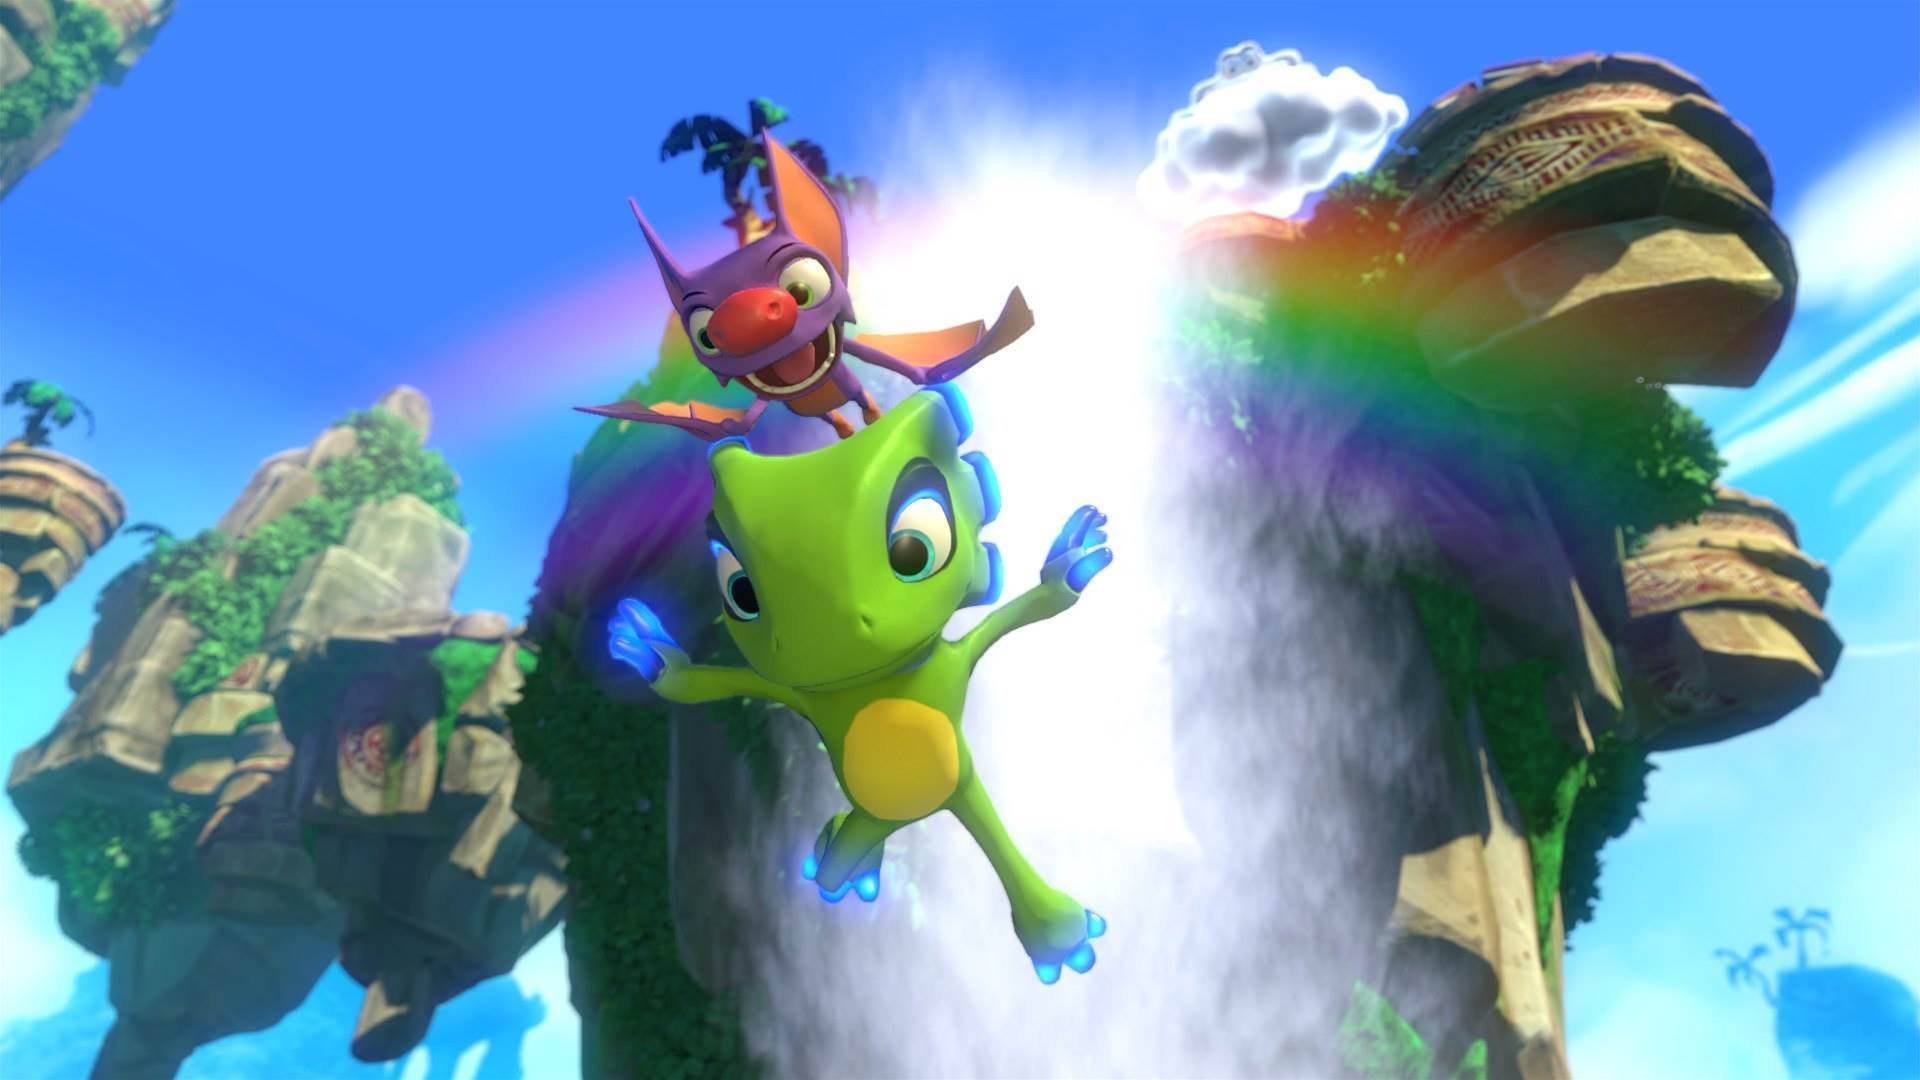 Ultra-colourful Yooka-Laylee screenshots